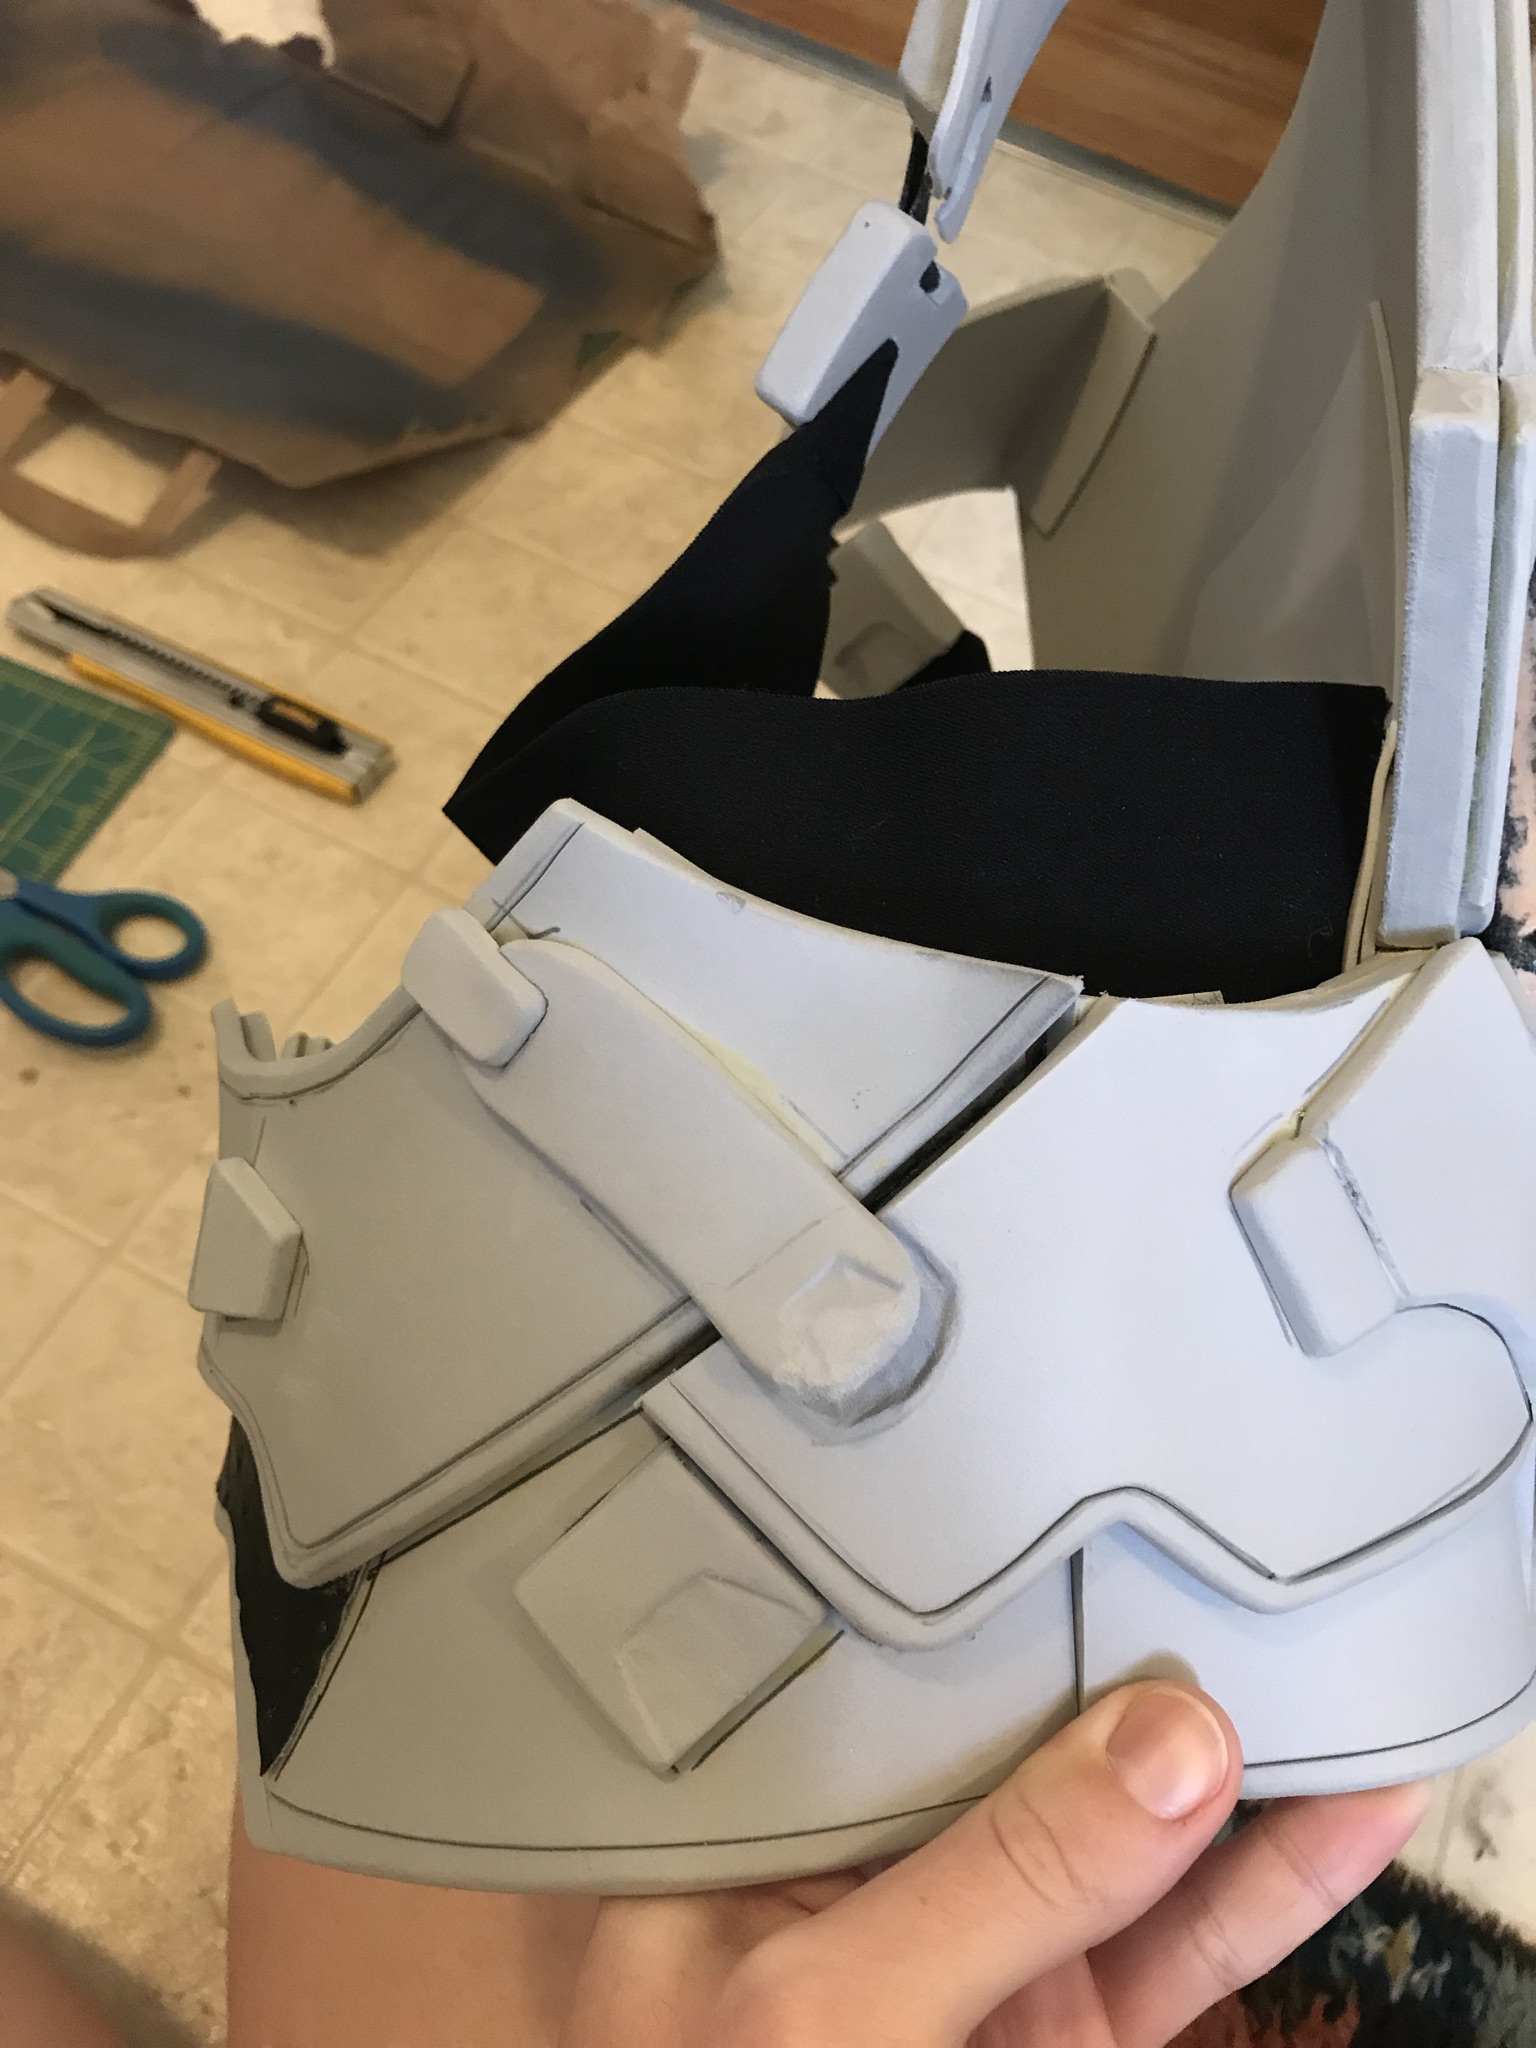 This is the side that comes apart so that I can put the armor on. Closes with velcro on the strap and foam, as well as a snap.